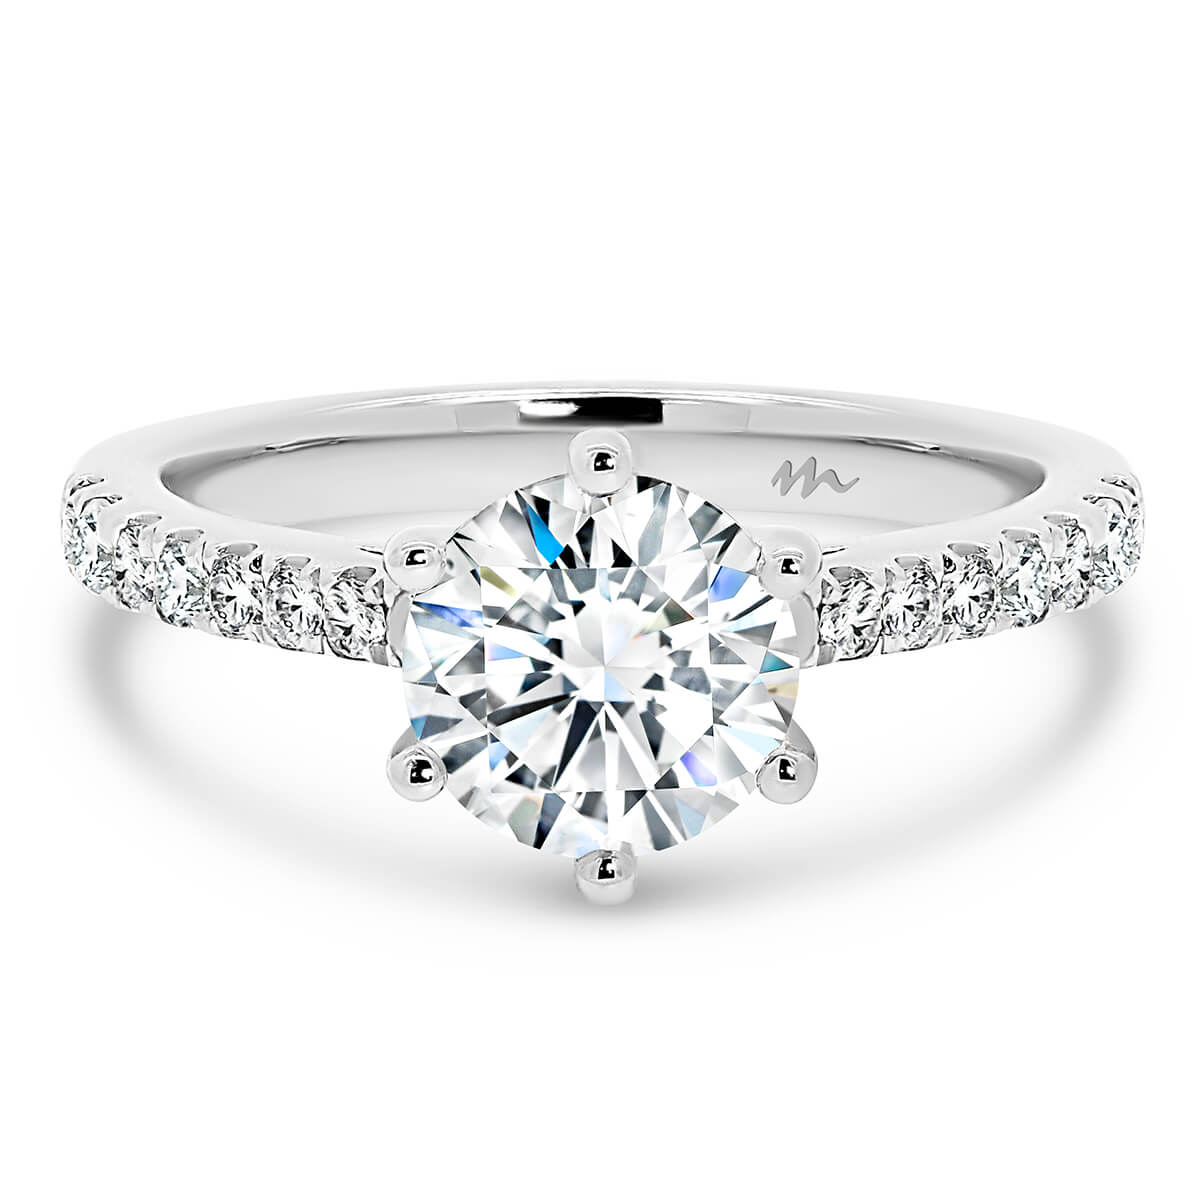 Amy Round Moissanite engagement ring with tapered moissanite band